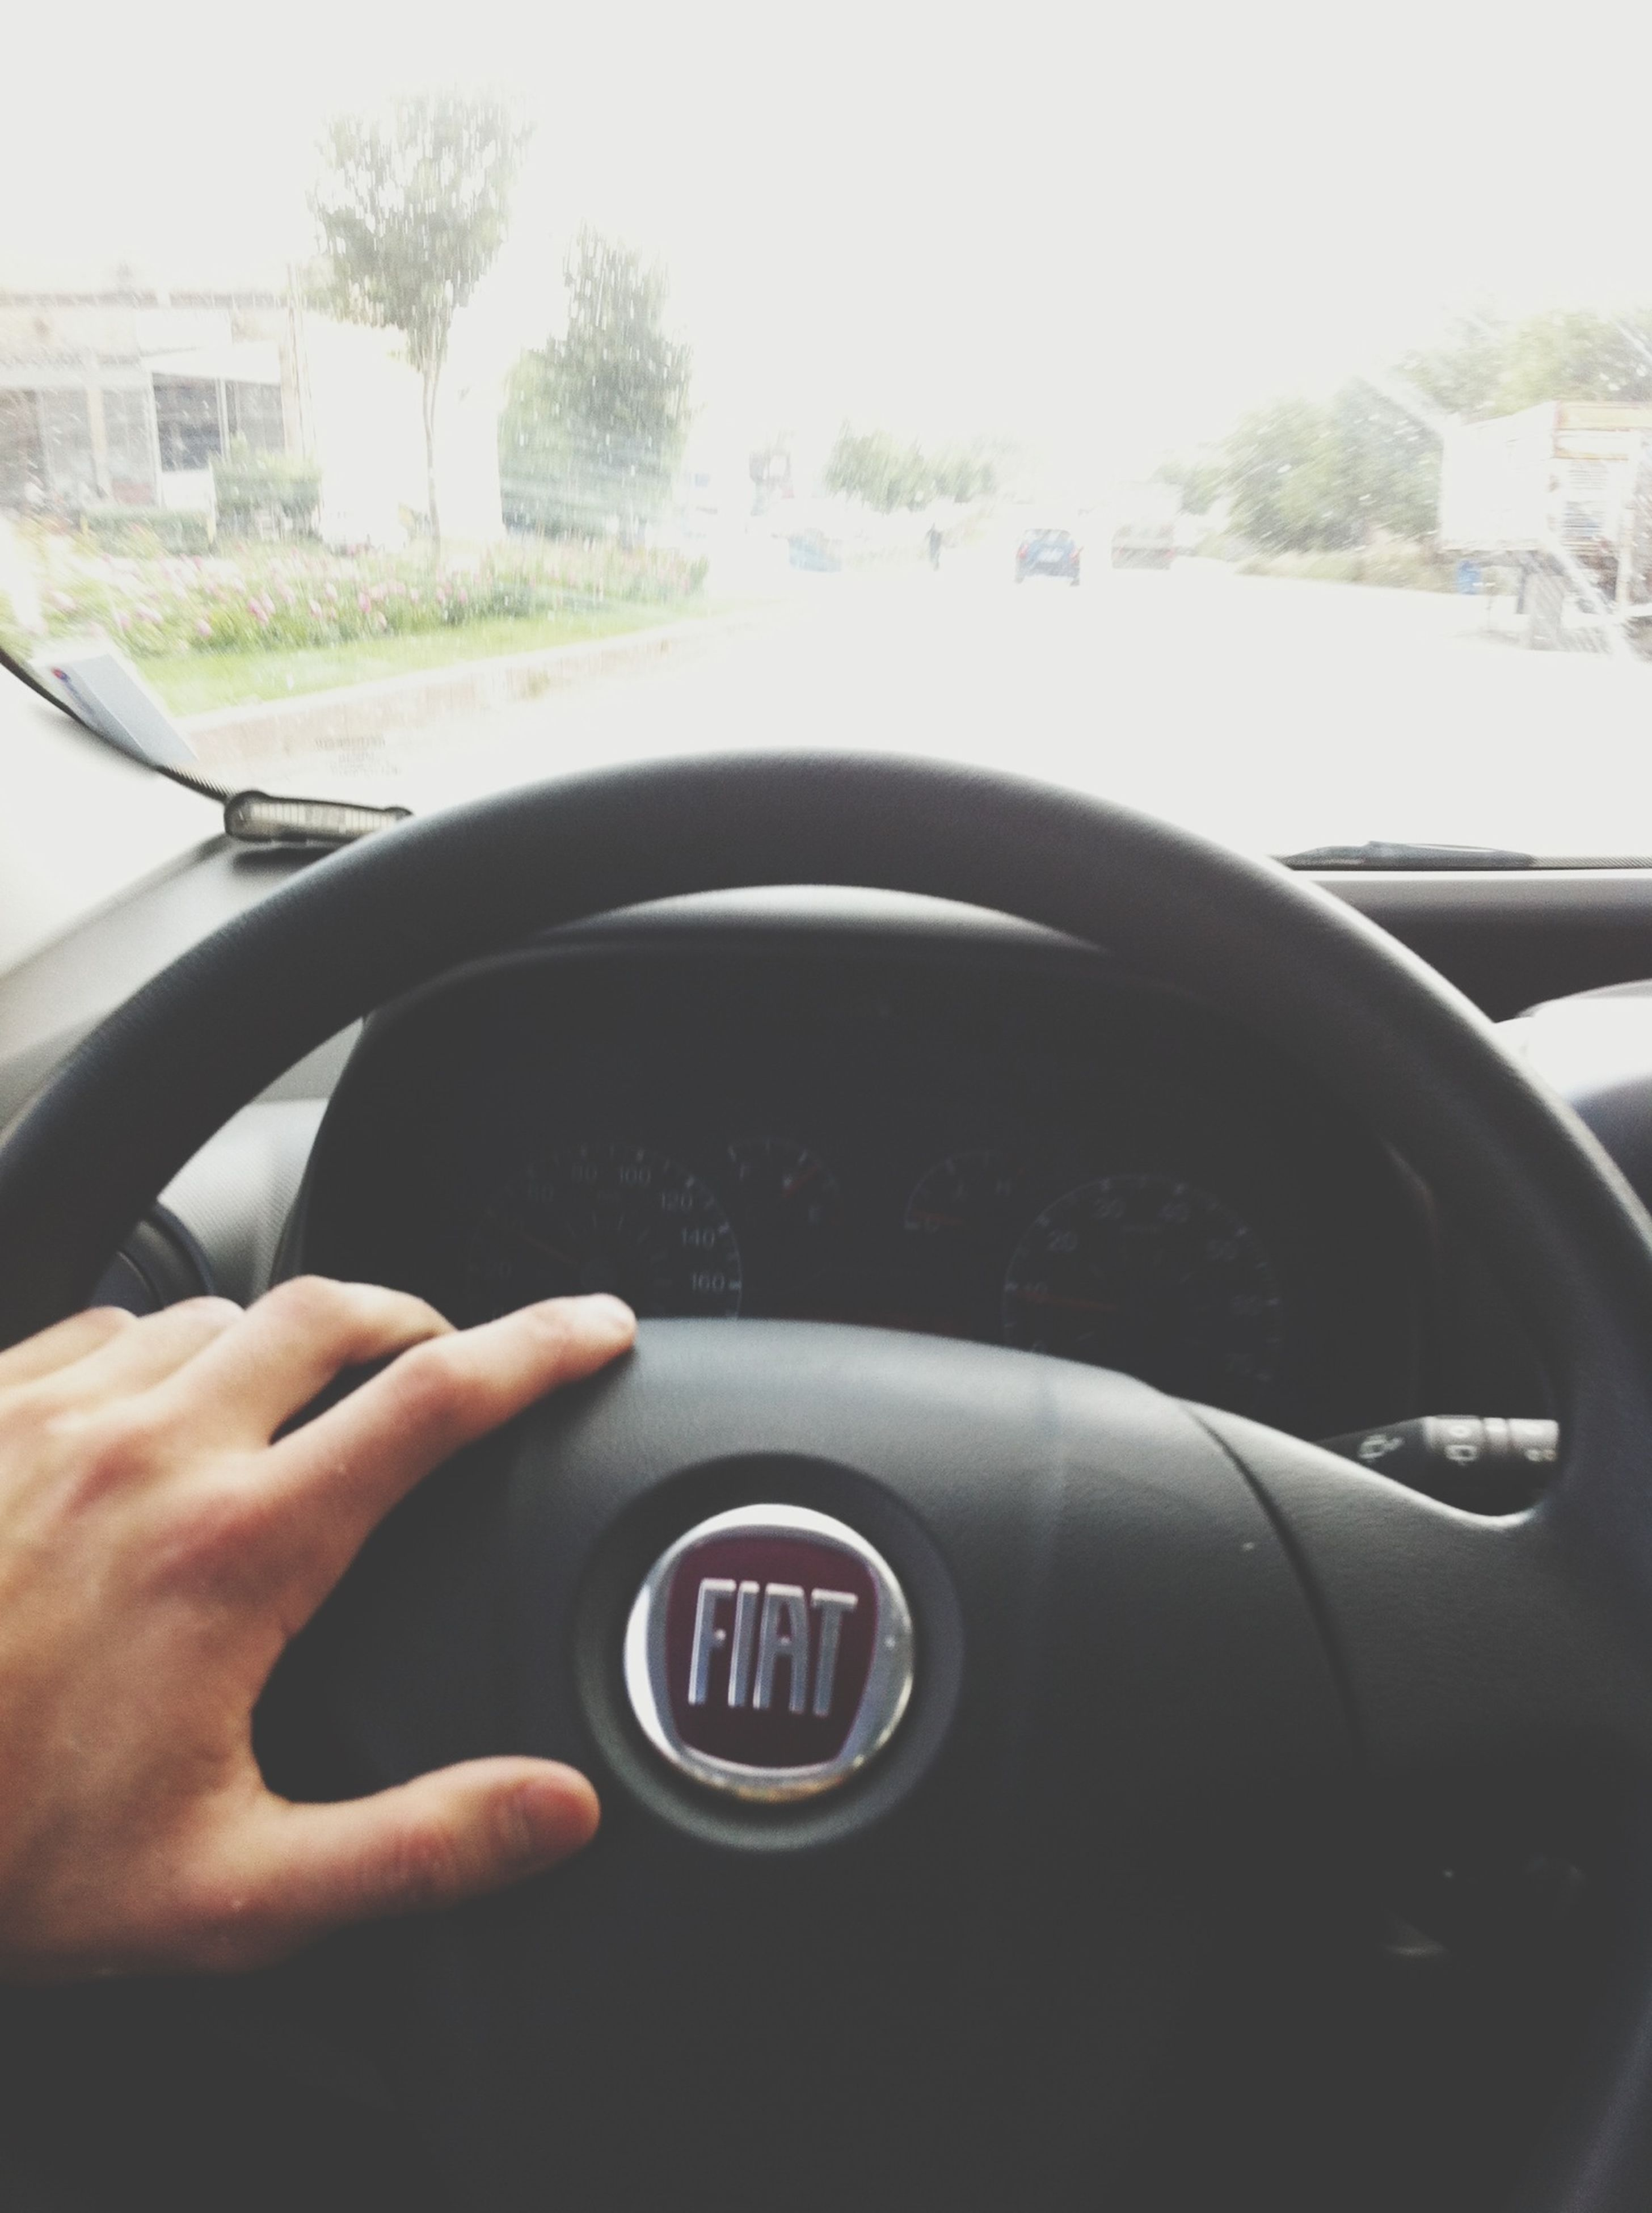 transportation, car, mode of transport, land vehicle, part of, vehicle interior, person, cropped, car interior, side-view mirror, reflection, glass - material, close-up, transparent, travel, road, windshield